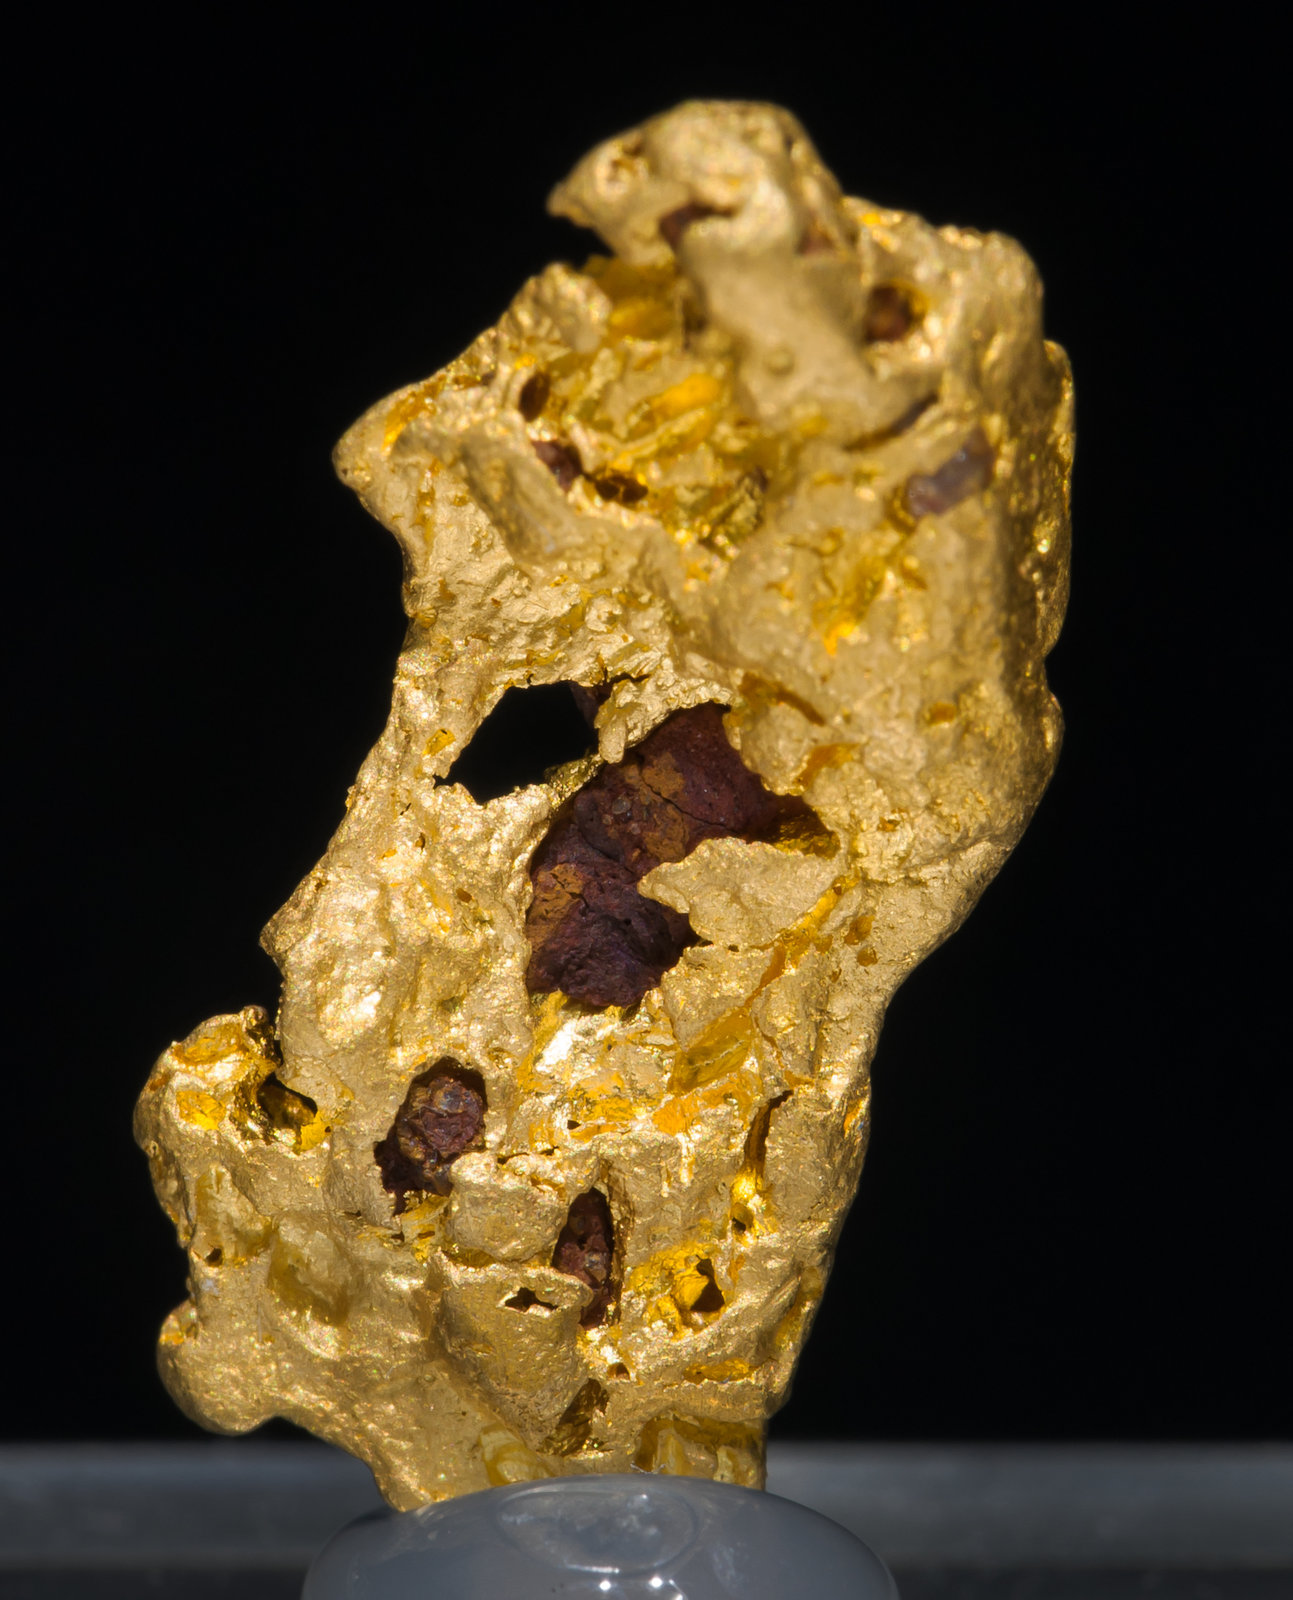 specimens/s_imagesAC4/Gold-NR97AC4r.jpg